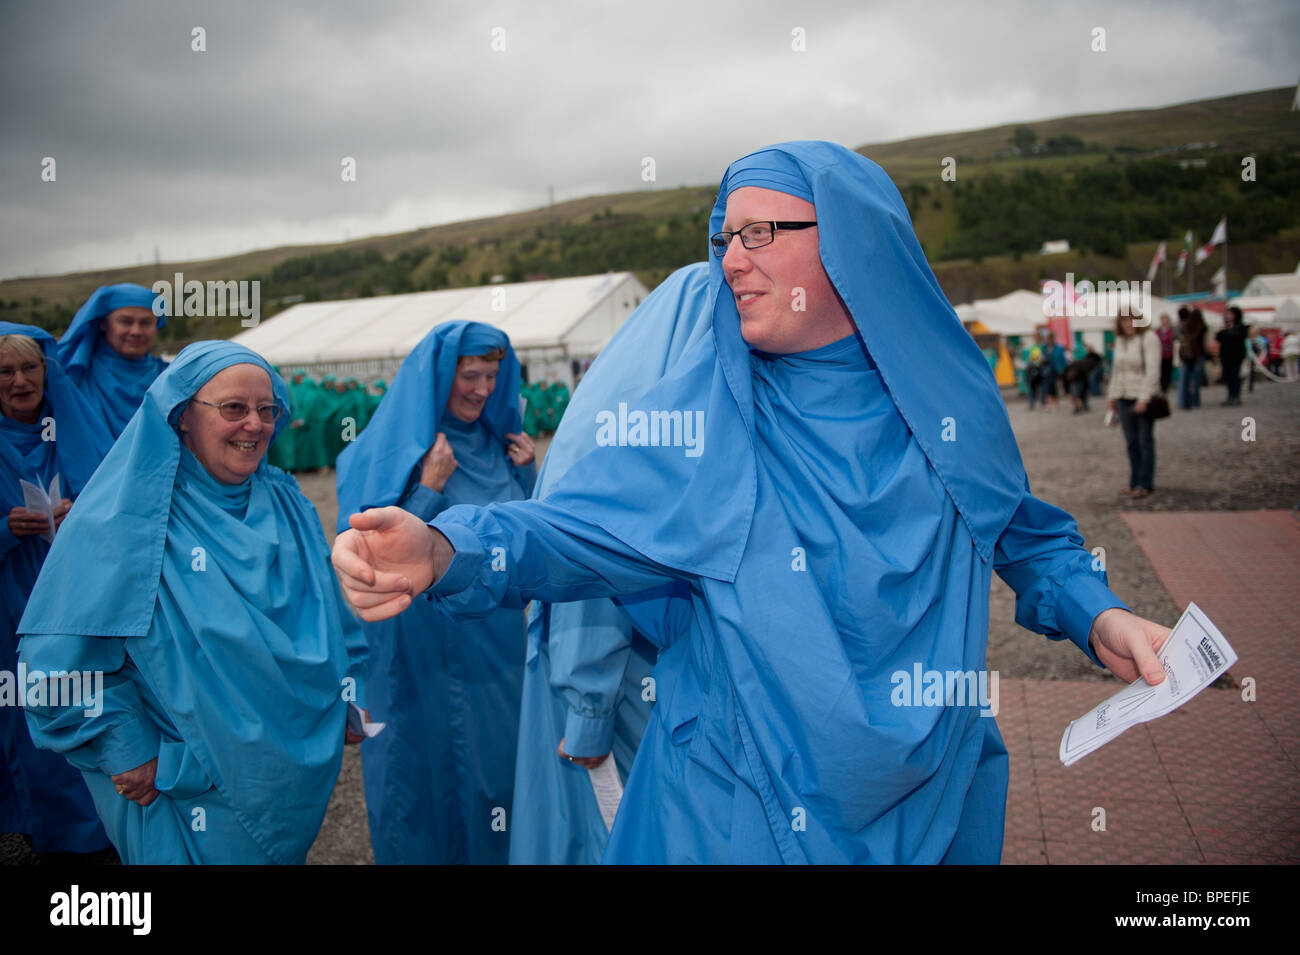 Blue robed Bards of the Gorsedd the National Eisteddfod of Wales, Ebbw Vale 2010 - Stock Image